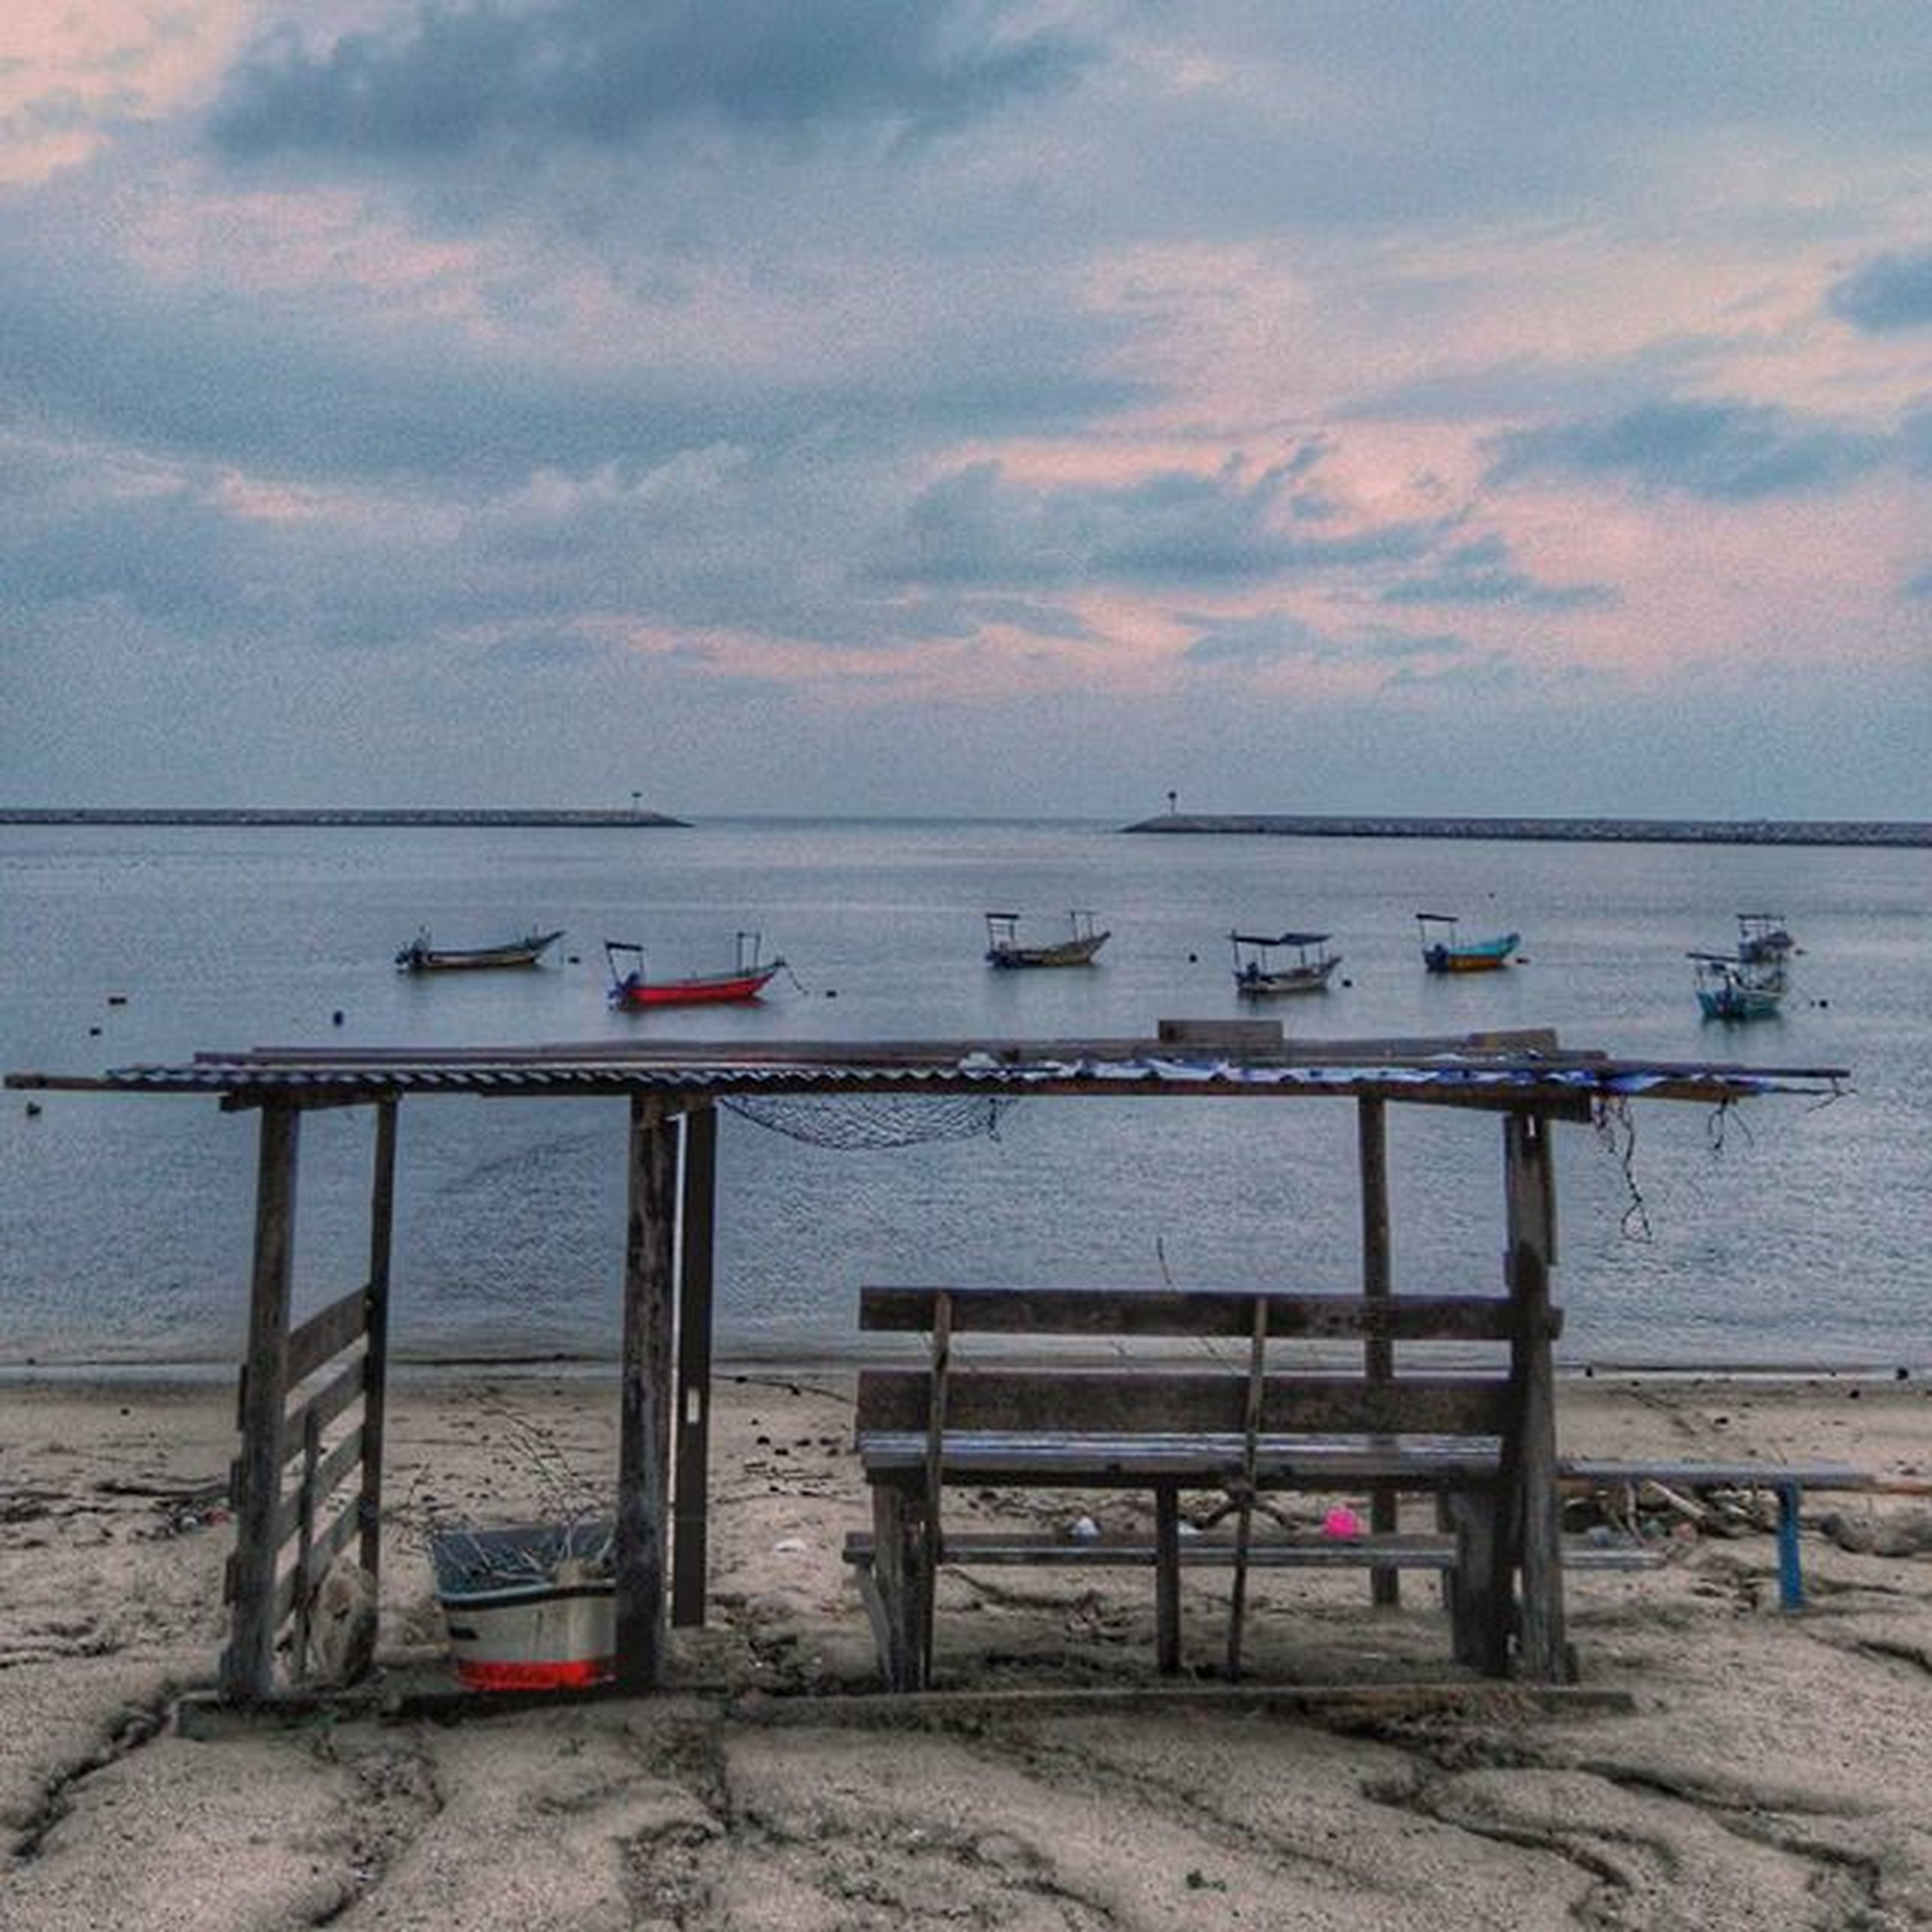 sea, horizon over water, water, sky, nautical vessel, beach, cloud - sky, transportation, boat, shore, moored, mode of transport, tranquility, tranquil scene, scenics, beauty in nature, nature, cloudy, sand, sunset